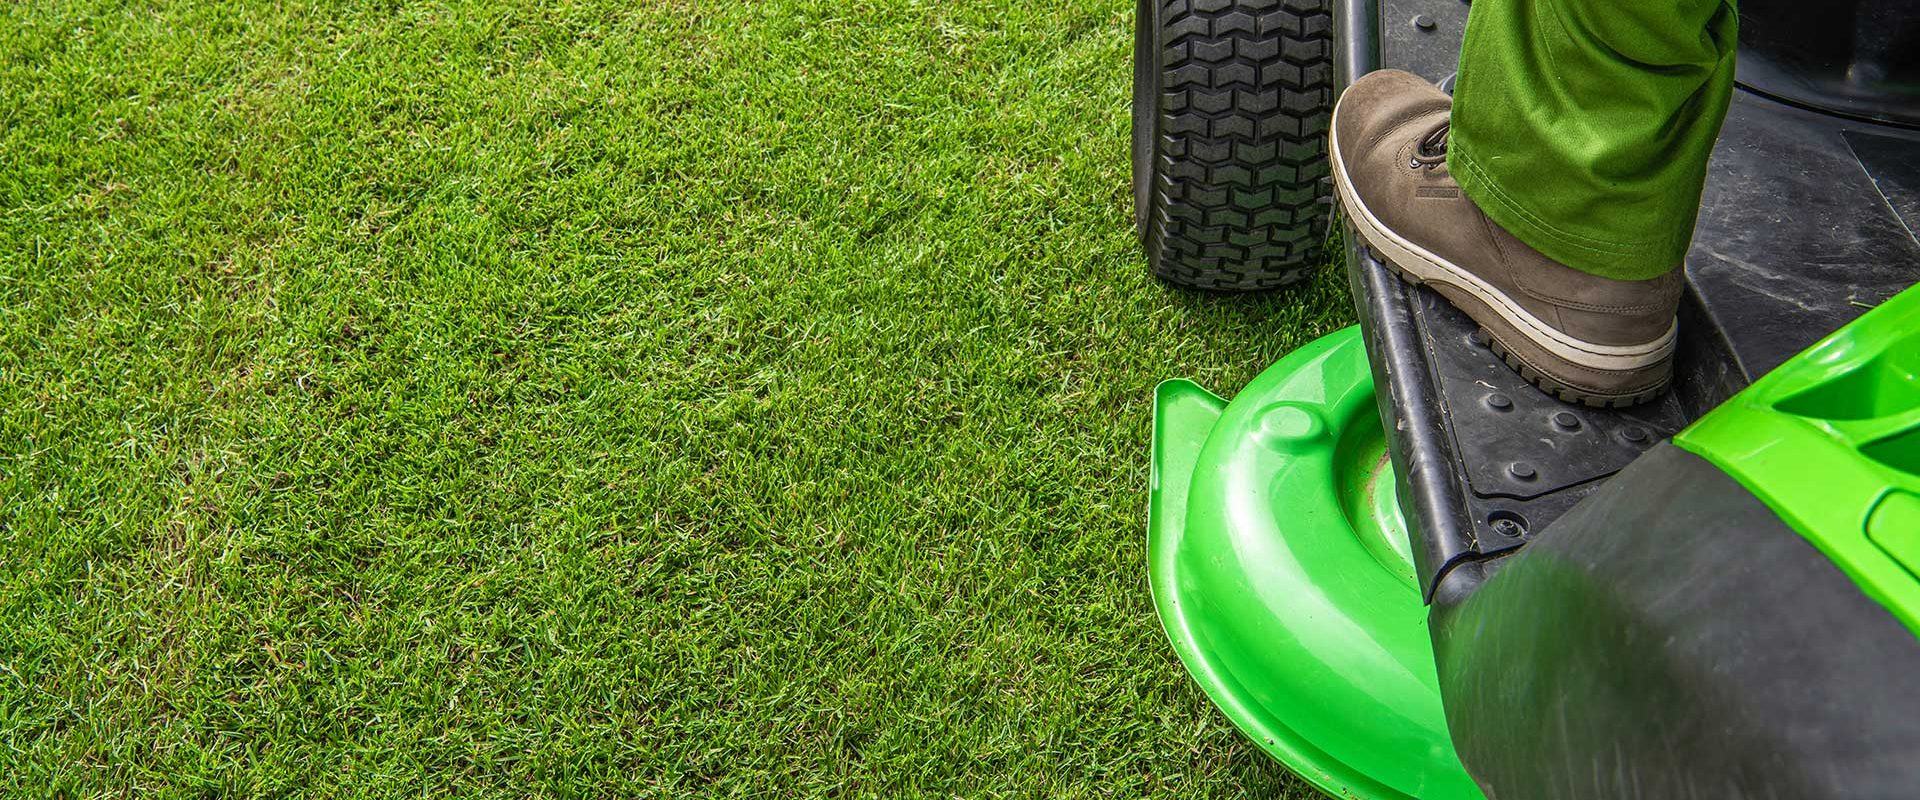 professional-grass-mowing-backdrop-with-copy-space-CLTW4Z5